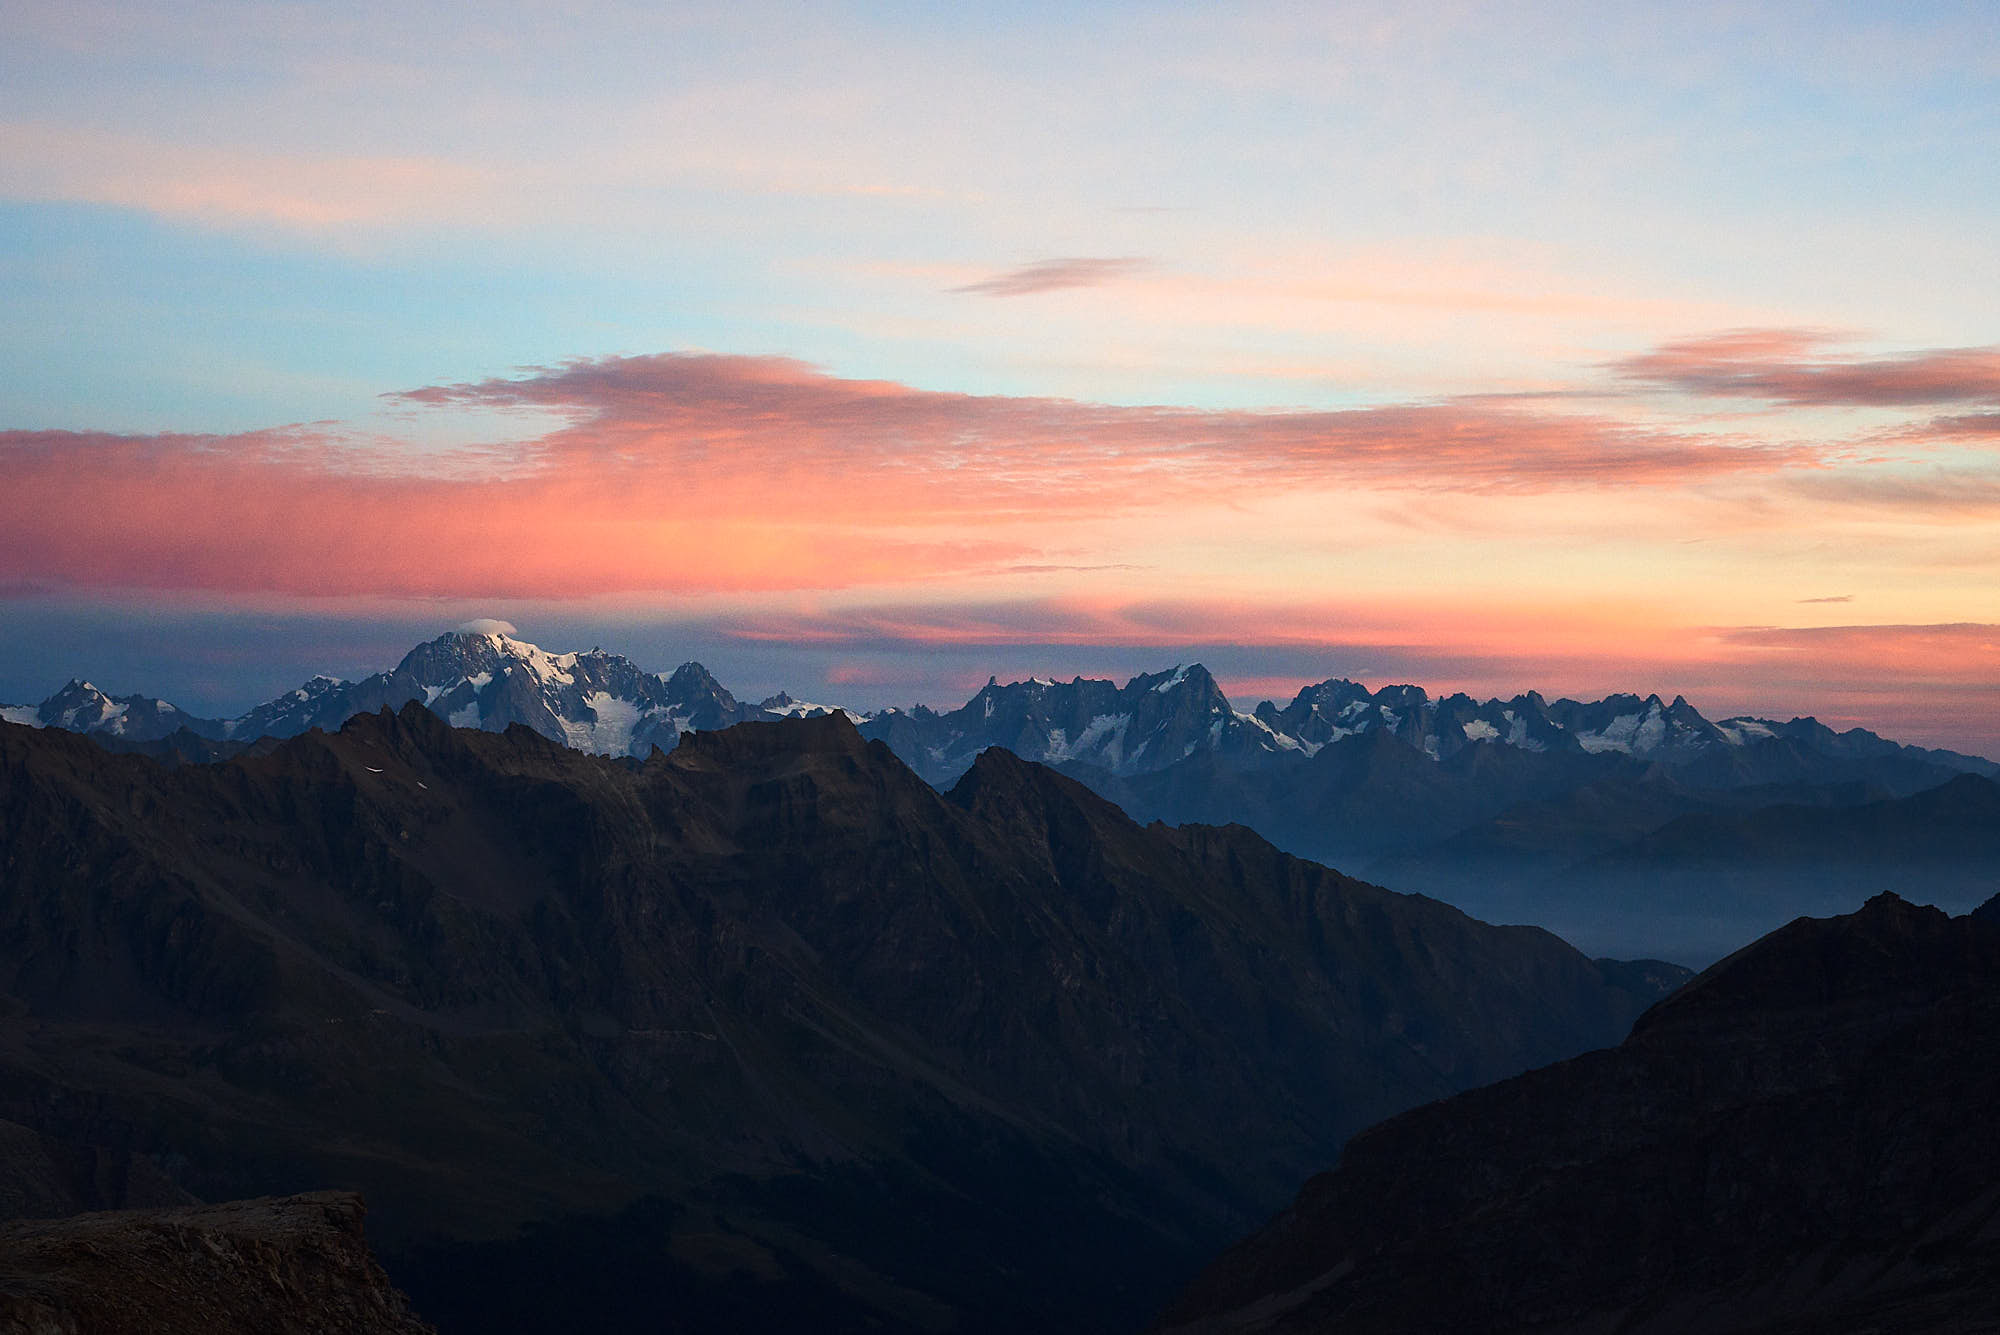 View of sunrise over Mont Blanc, taken from Gran Paradiso mountain in Italy